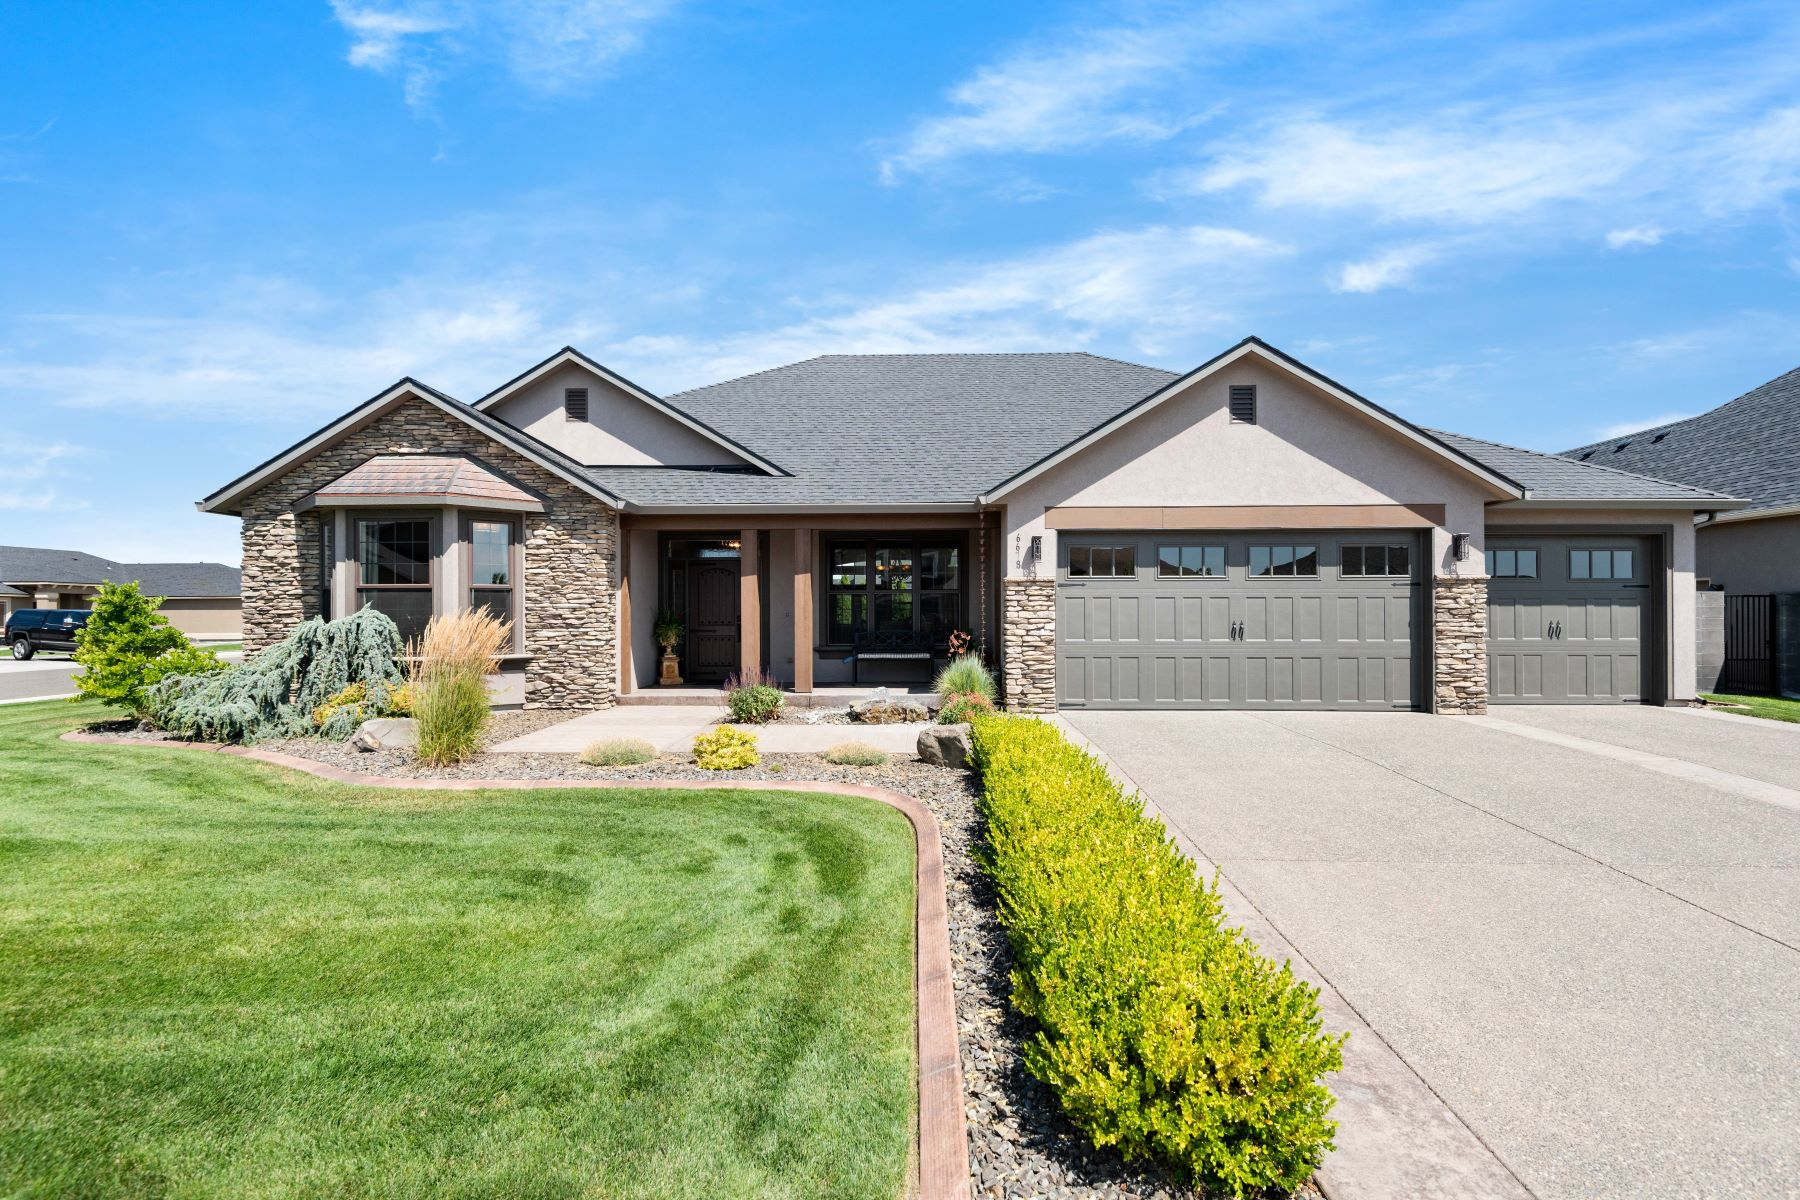 Single Family Homes for Sale at Former Parade of Homes Entry 6678 Whitestone Street West Richland, Washington 99353 United States